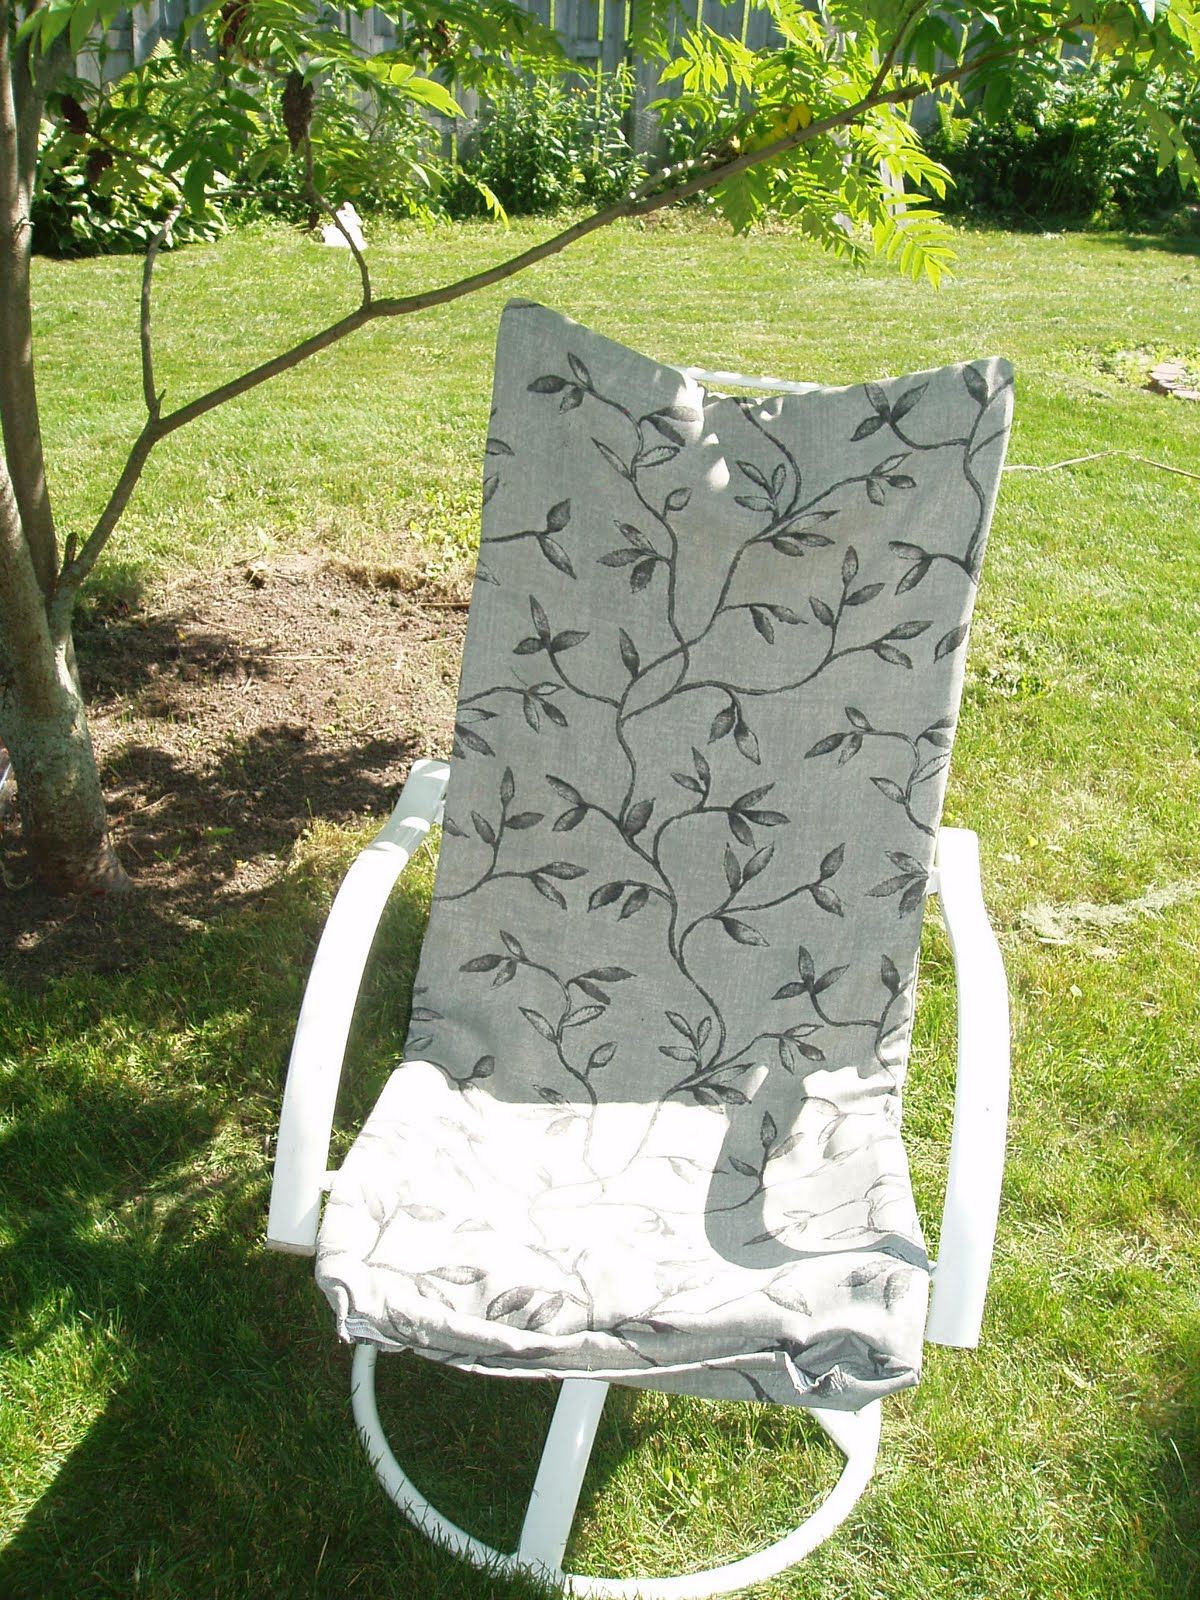 recovering lawn chairs ergonomic chair calgary sew what 39s happening part 2